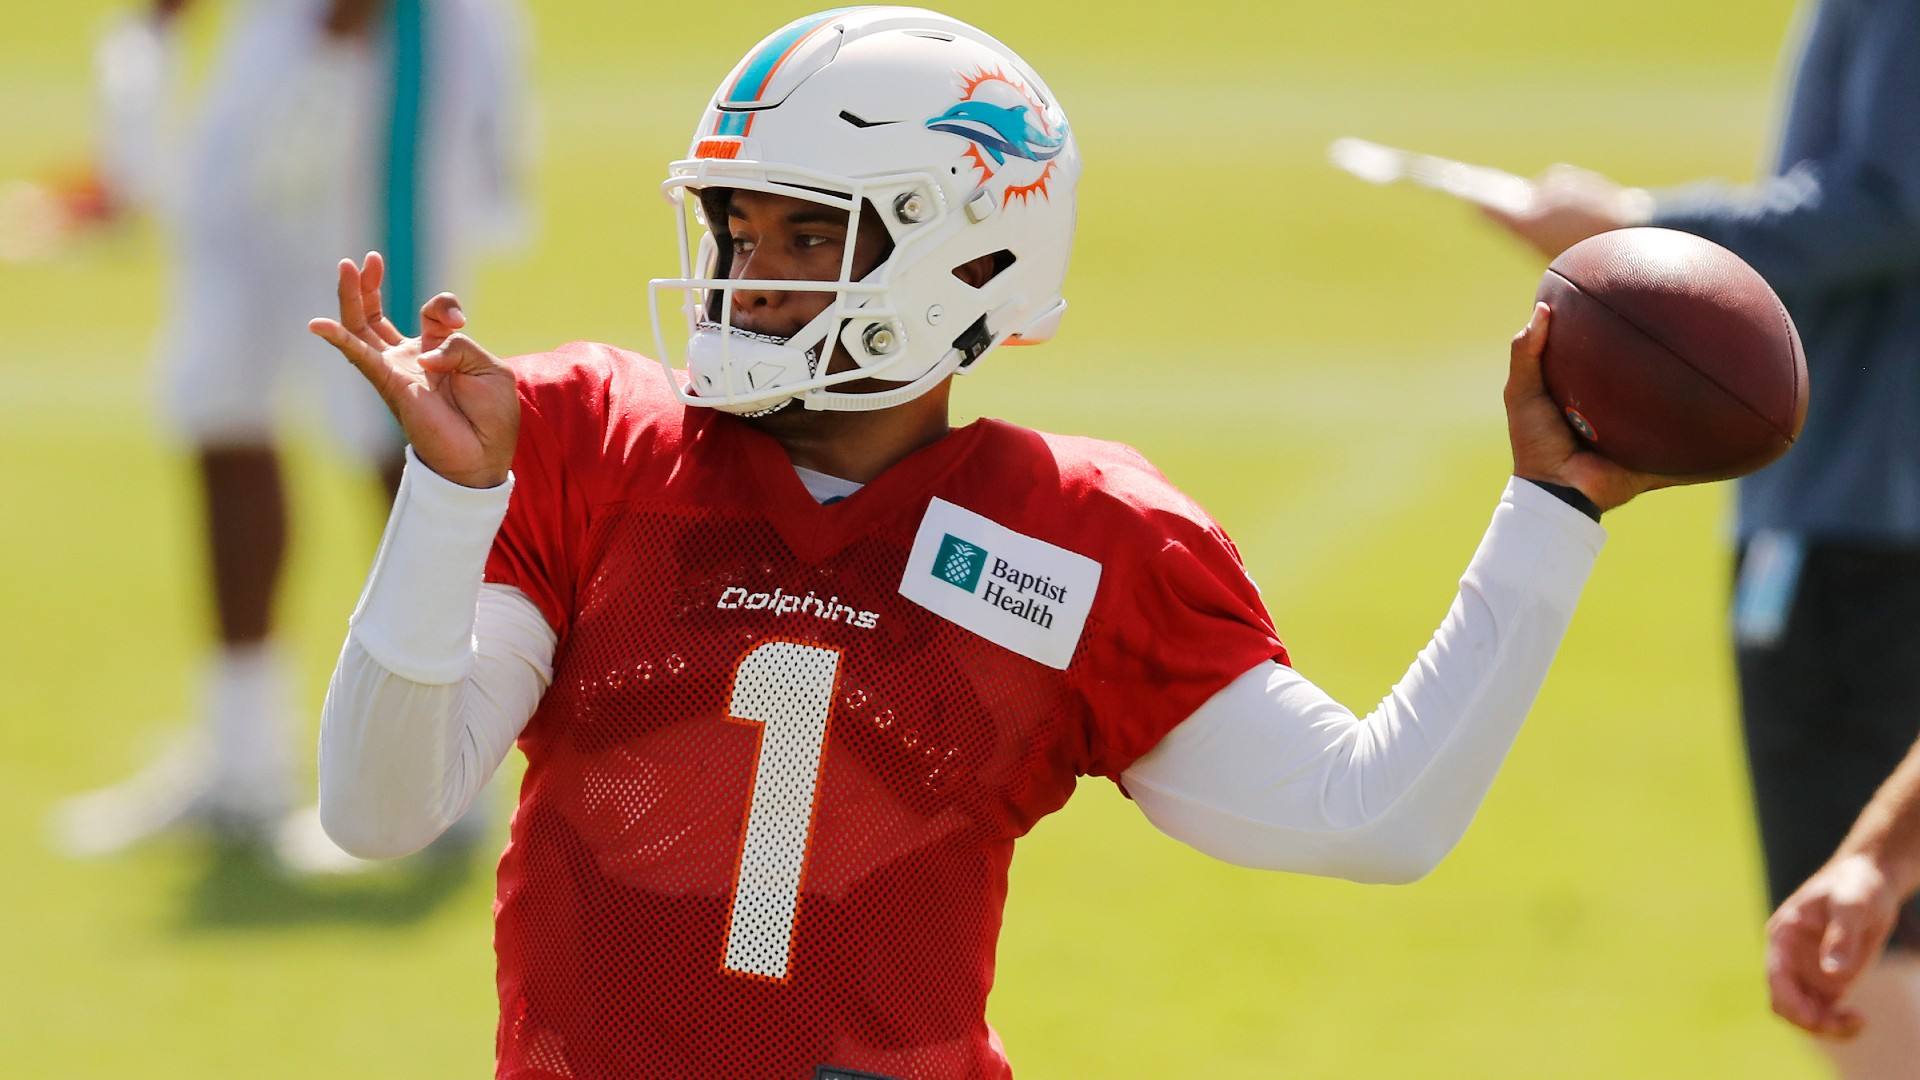 When will Tua Tagovailoa start for Dolphins? Miami's patience with rookie  QB leaves 2020 debut in flux | Sporting News